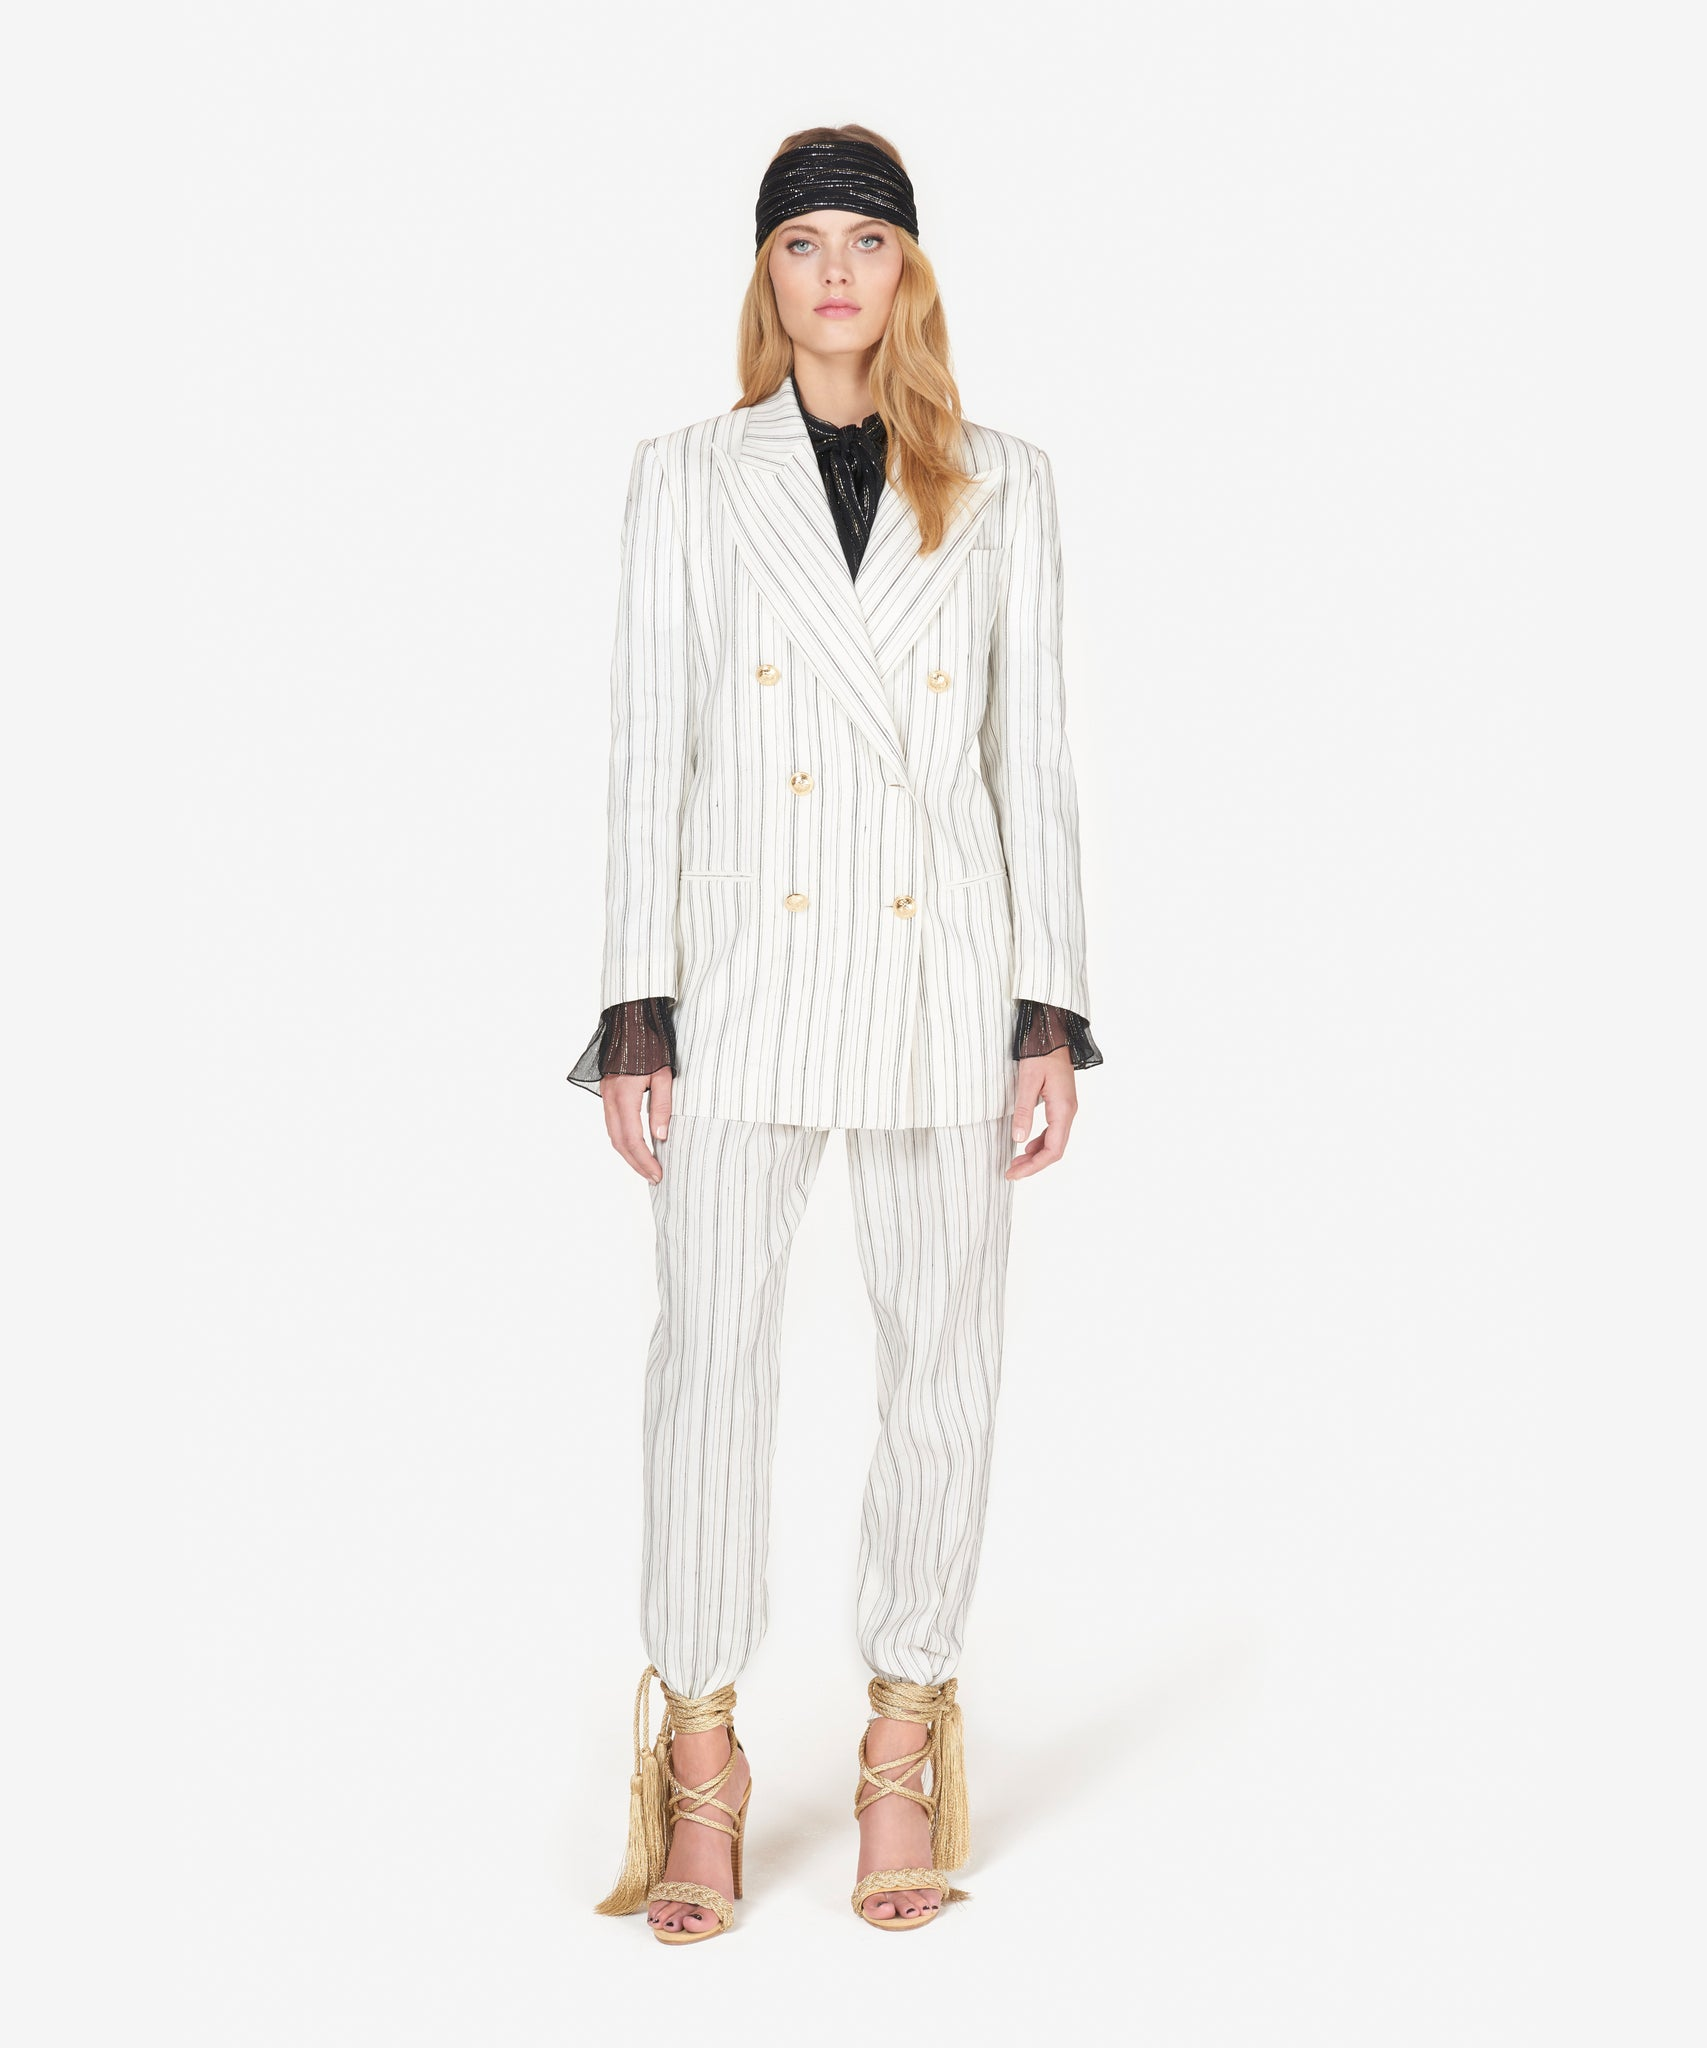 Double-breasted ivory pinstriped jacket